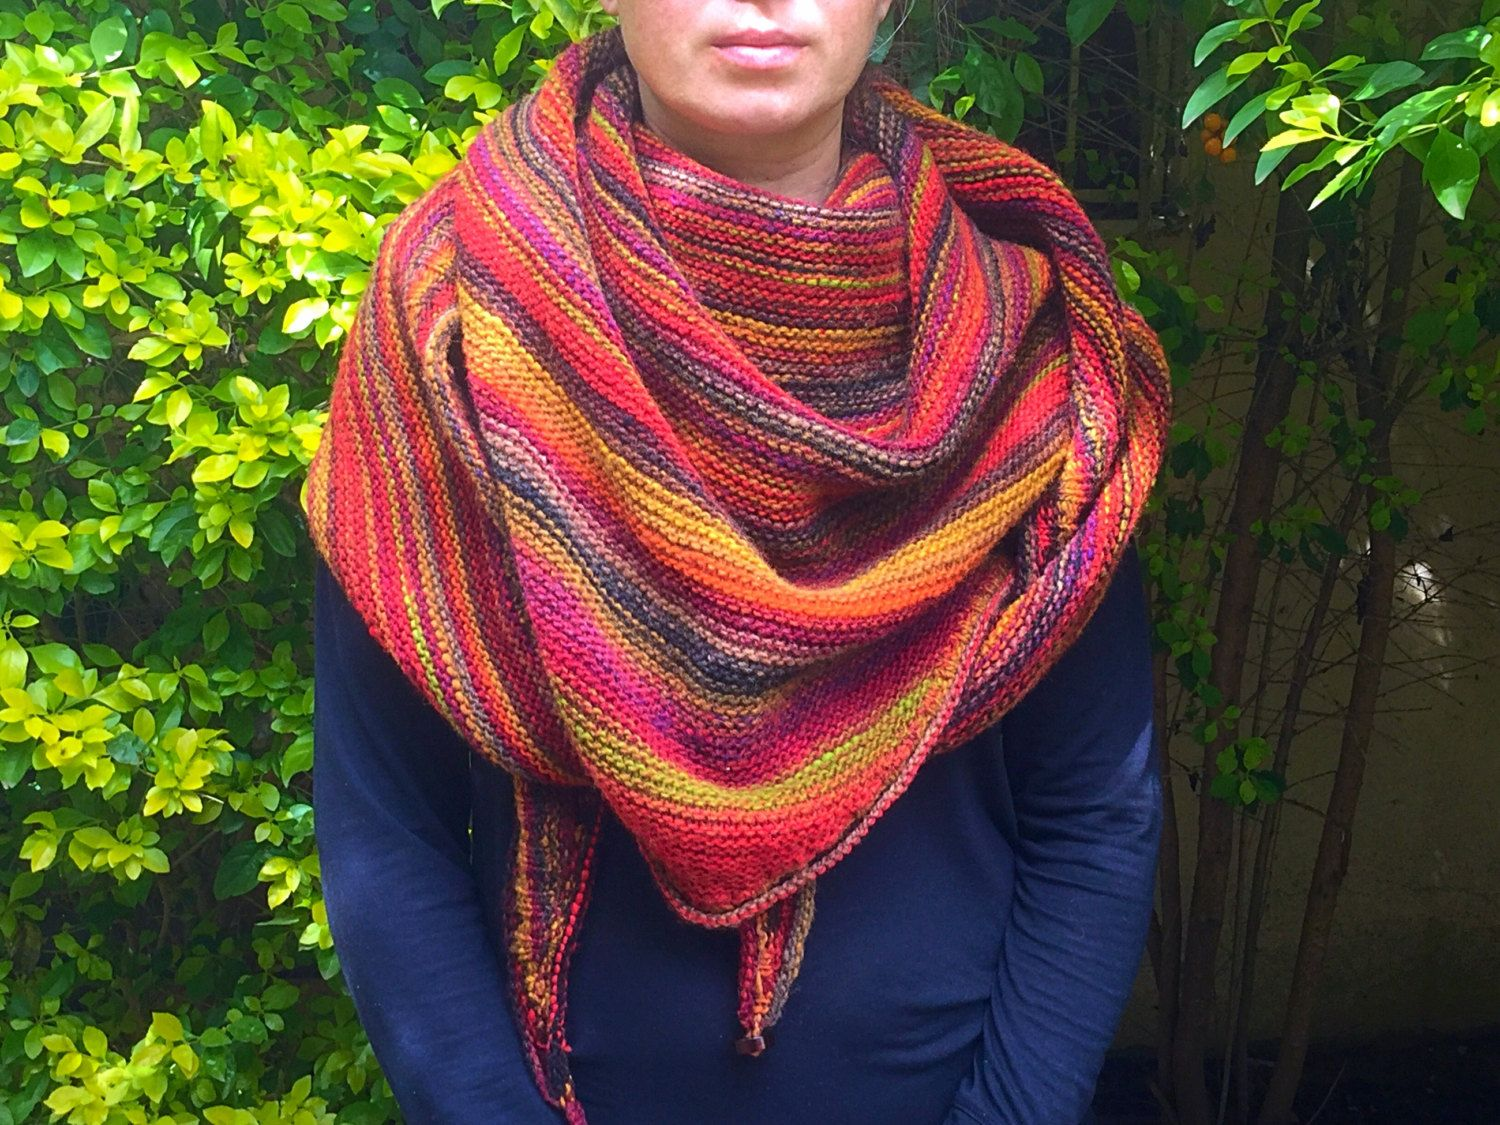 Hand knitted baktus shawl transformer by lofita on etsy hand knitted baktus shawl transformer by lofita on etsy bankloansurffo Gallery